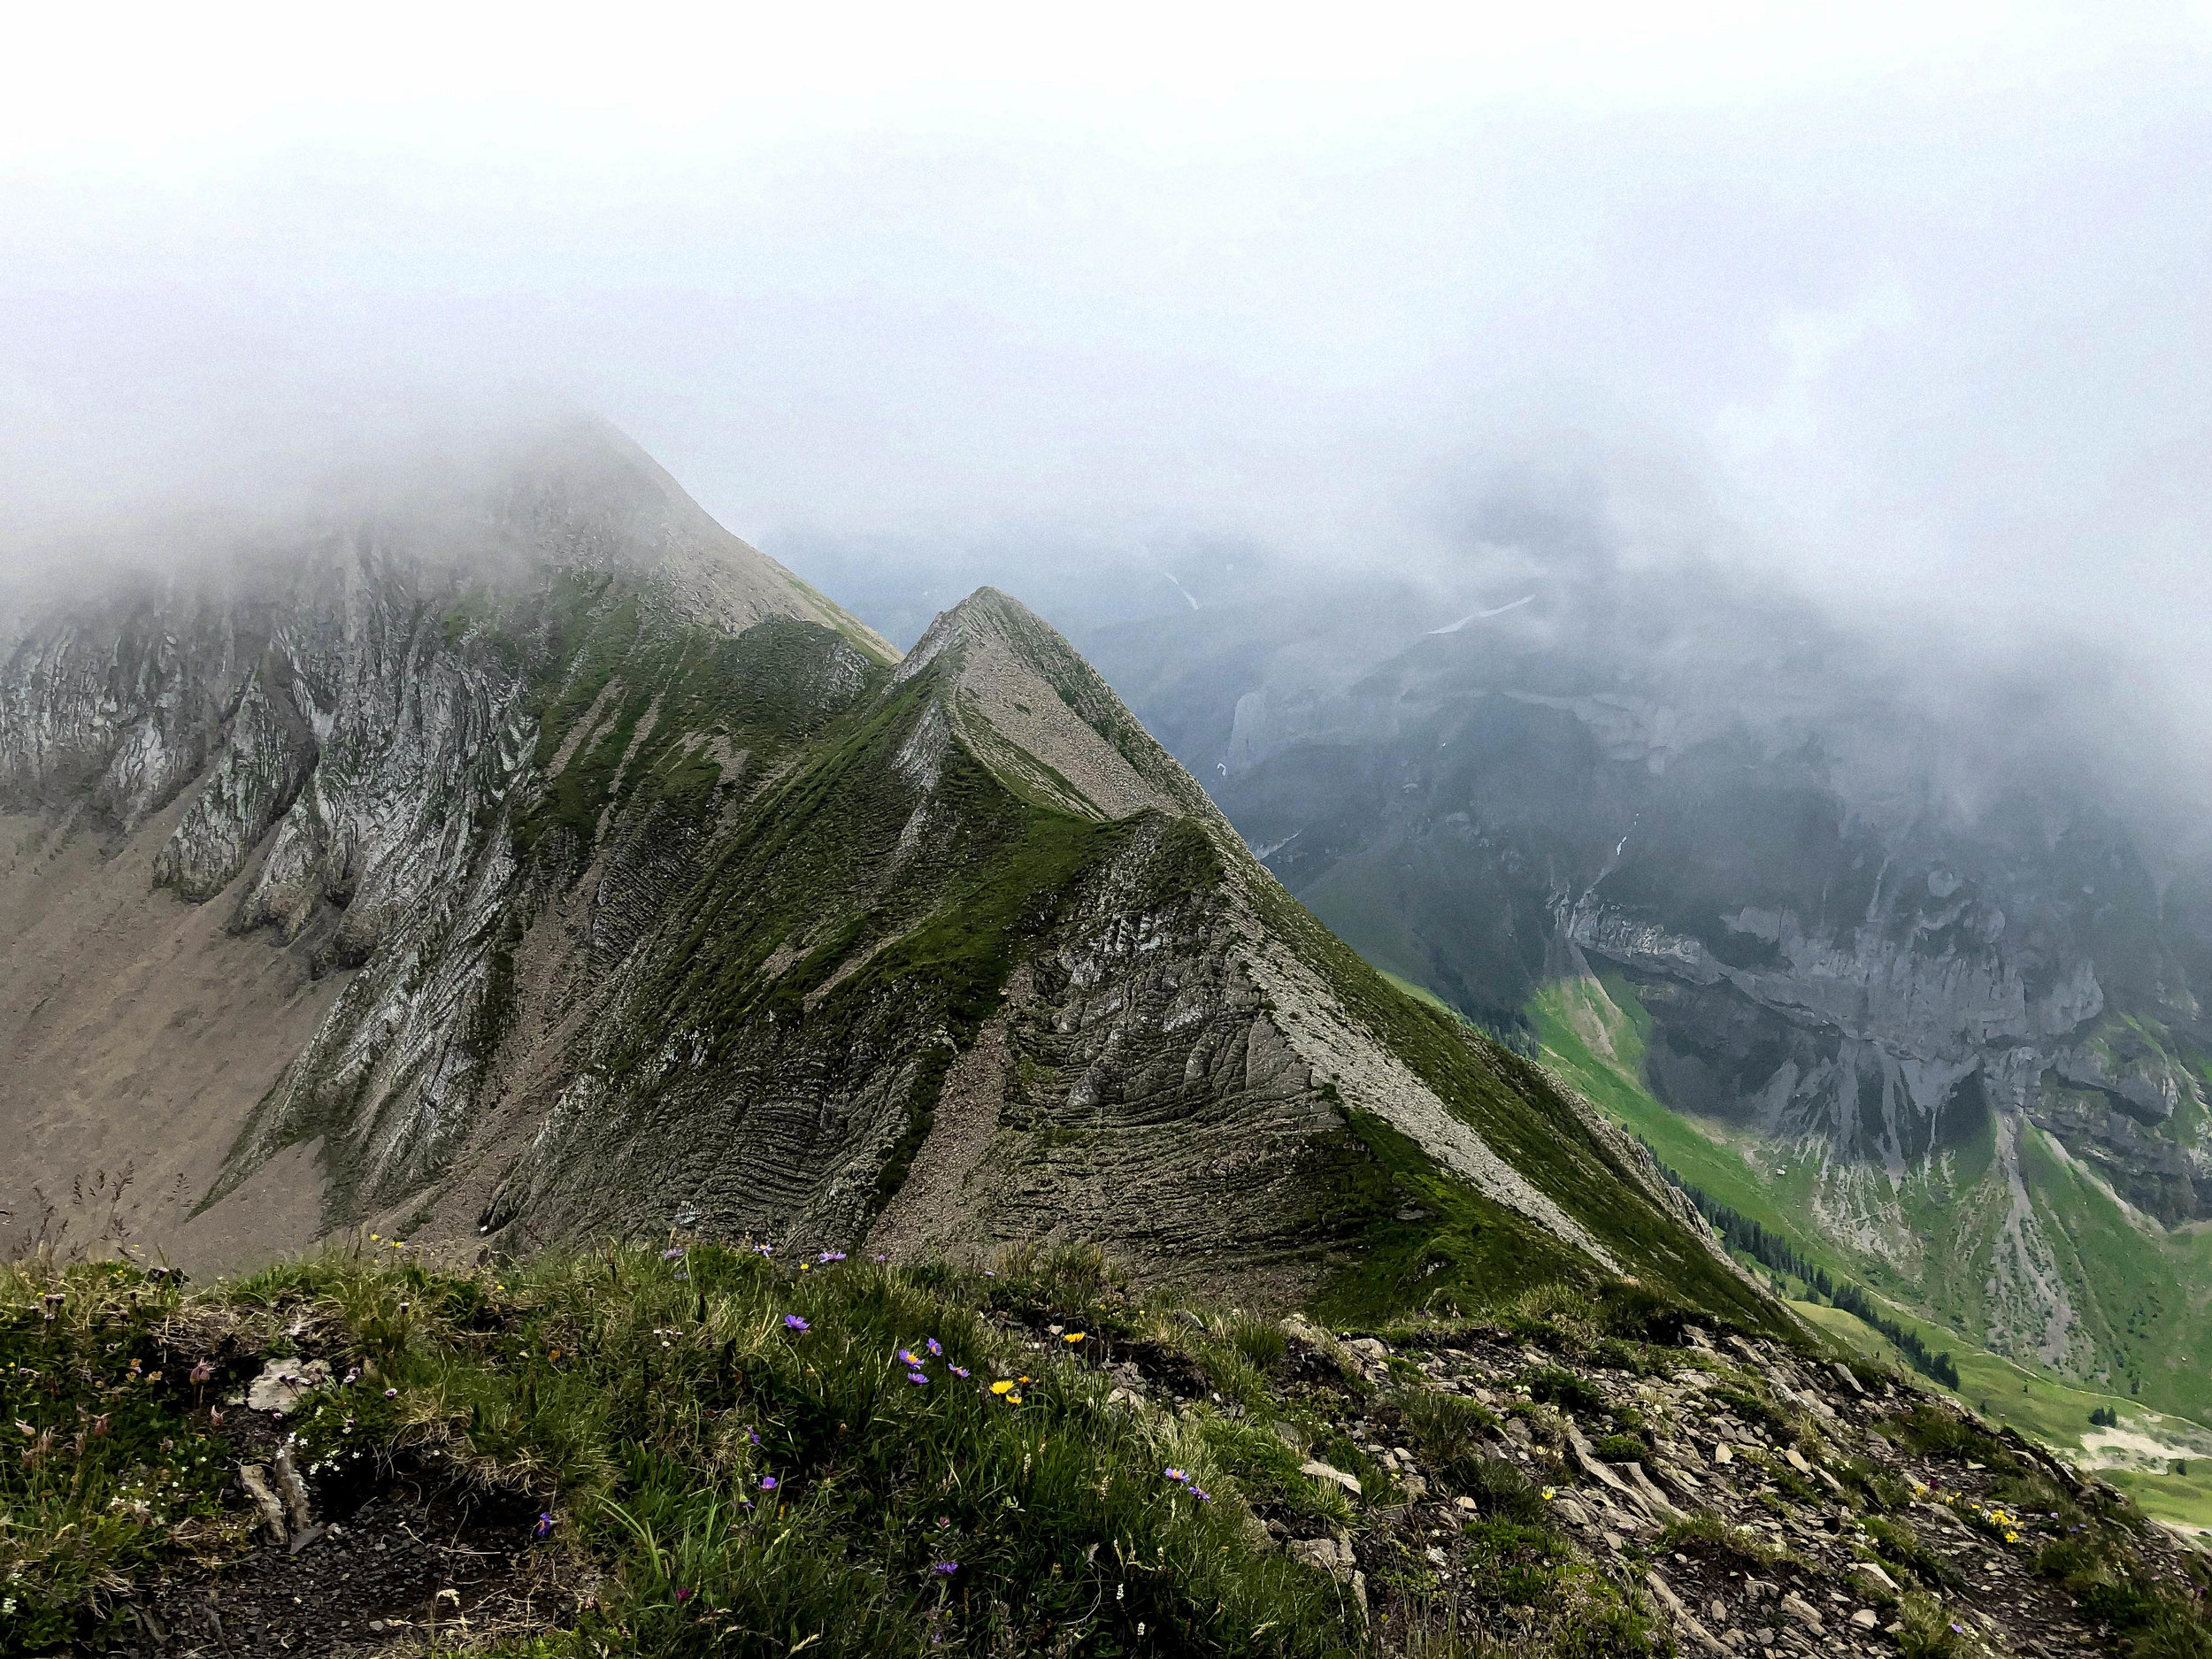 Hike up to Brisen Peak Nidwalden